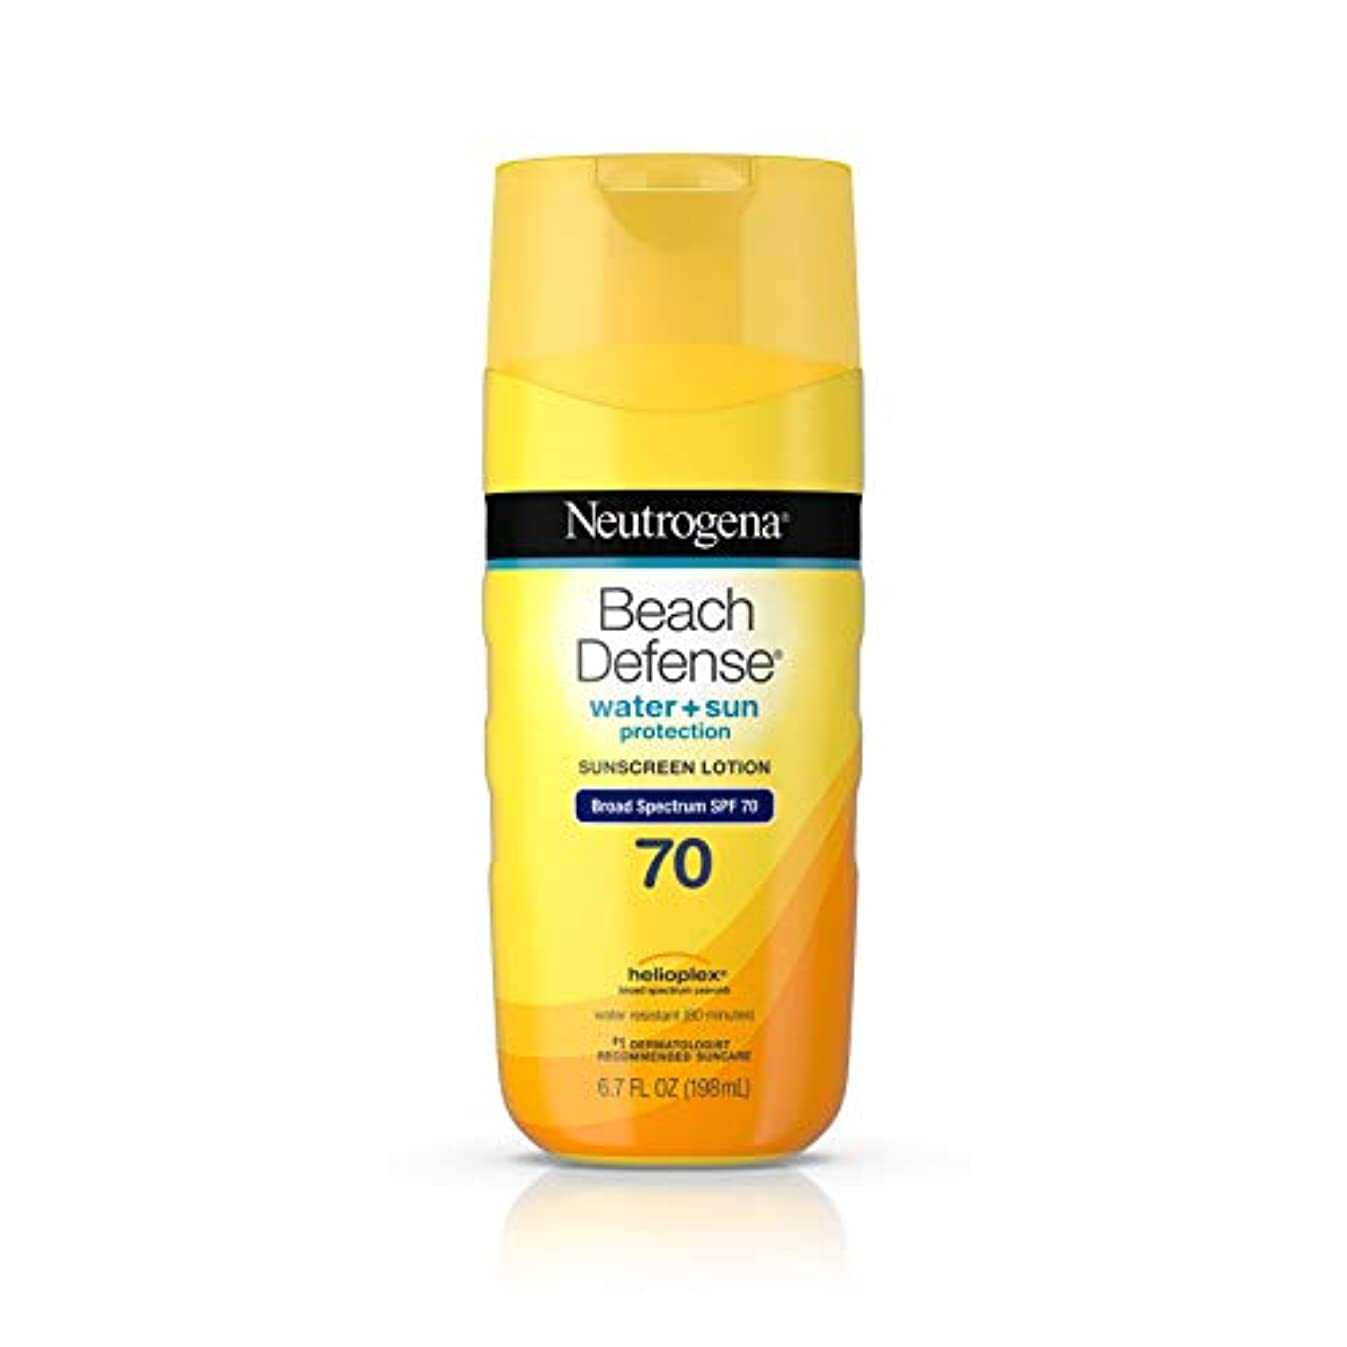 支払う徹底ドラッグ海外直送品Neutrogena Neutrogena Beach Defense Lotion SPF 70, 6.7 oz